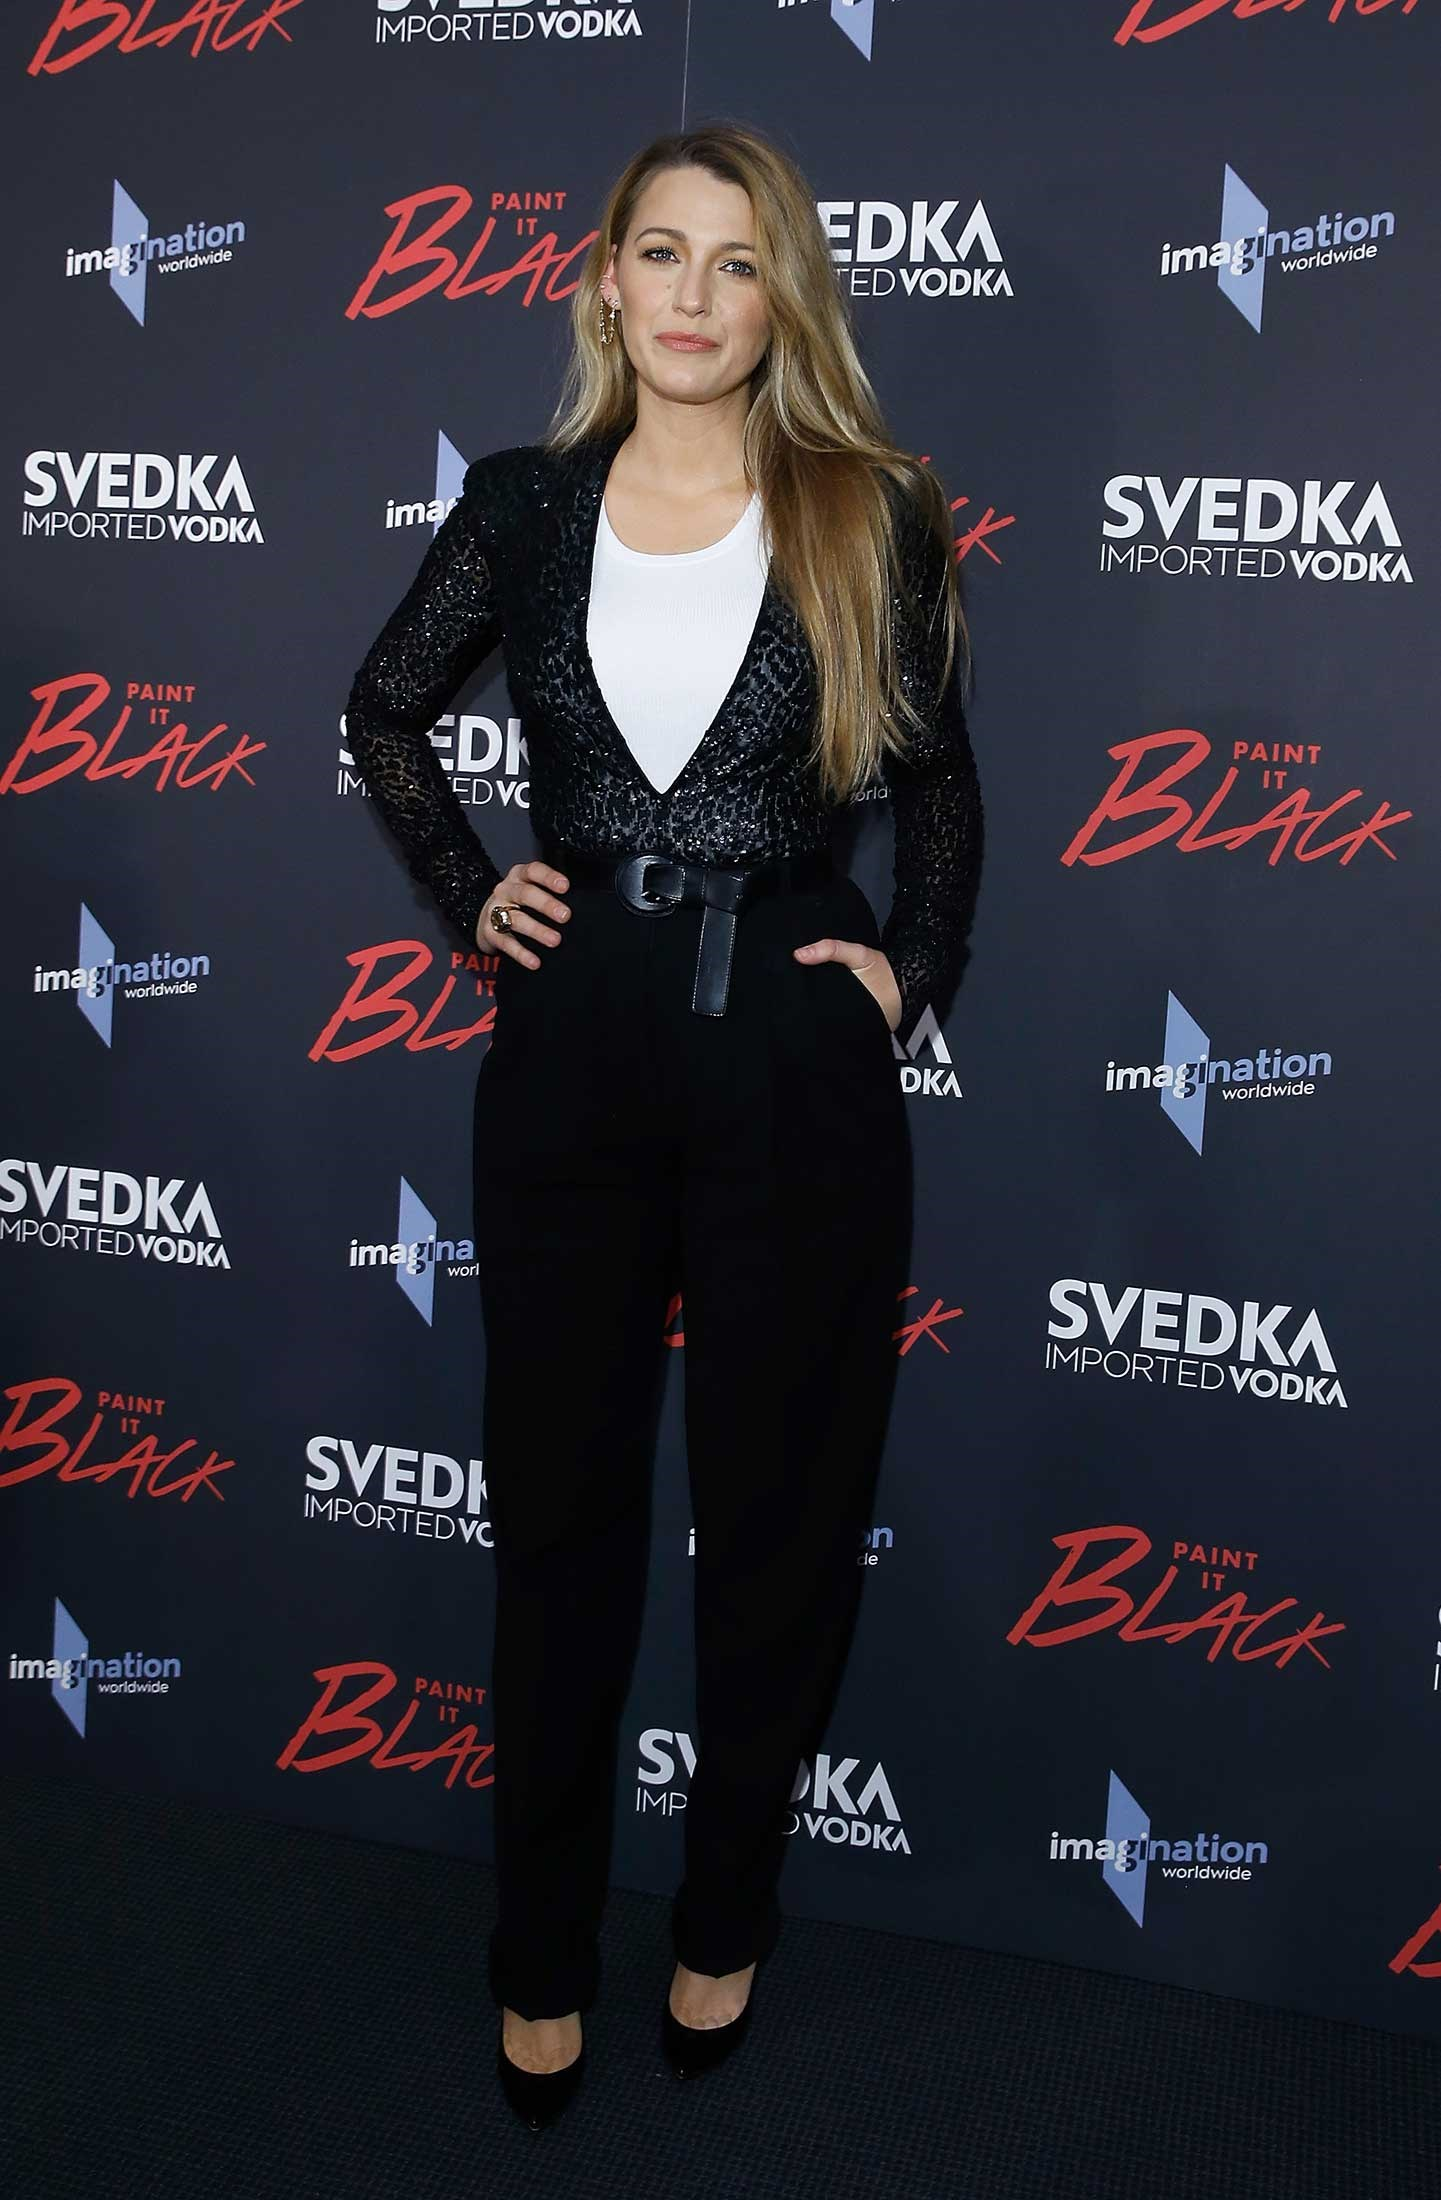 Blake looked chic AF in this sexy power suit sitch, proving she can wear literally ANYTHING.